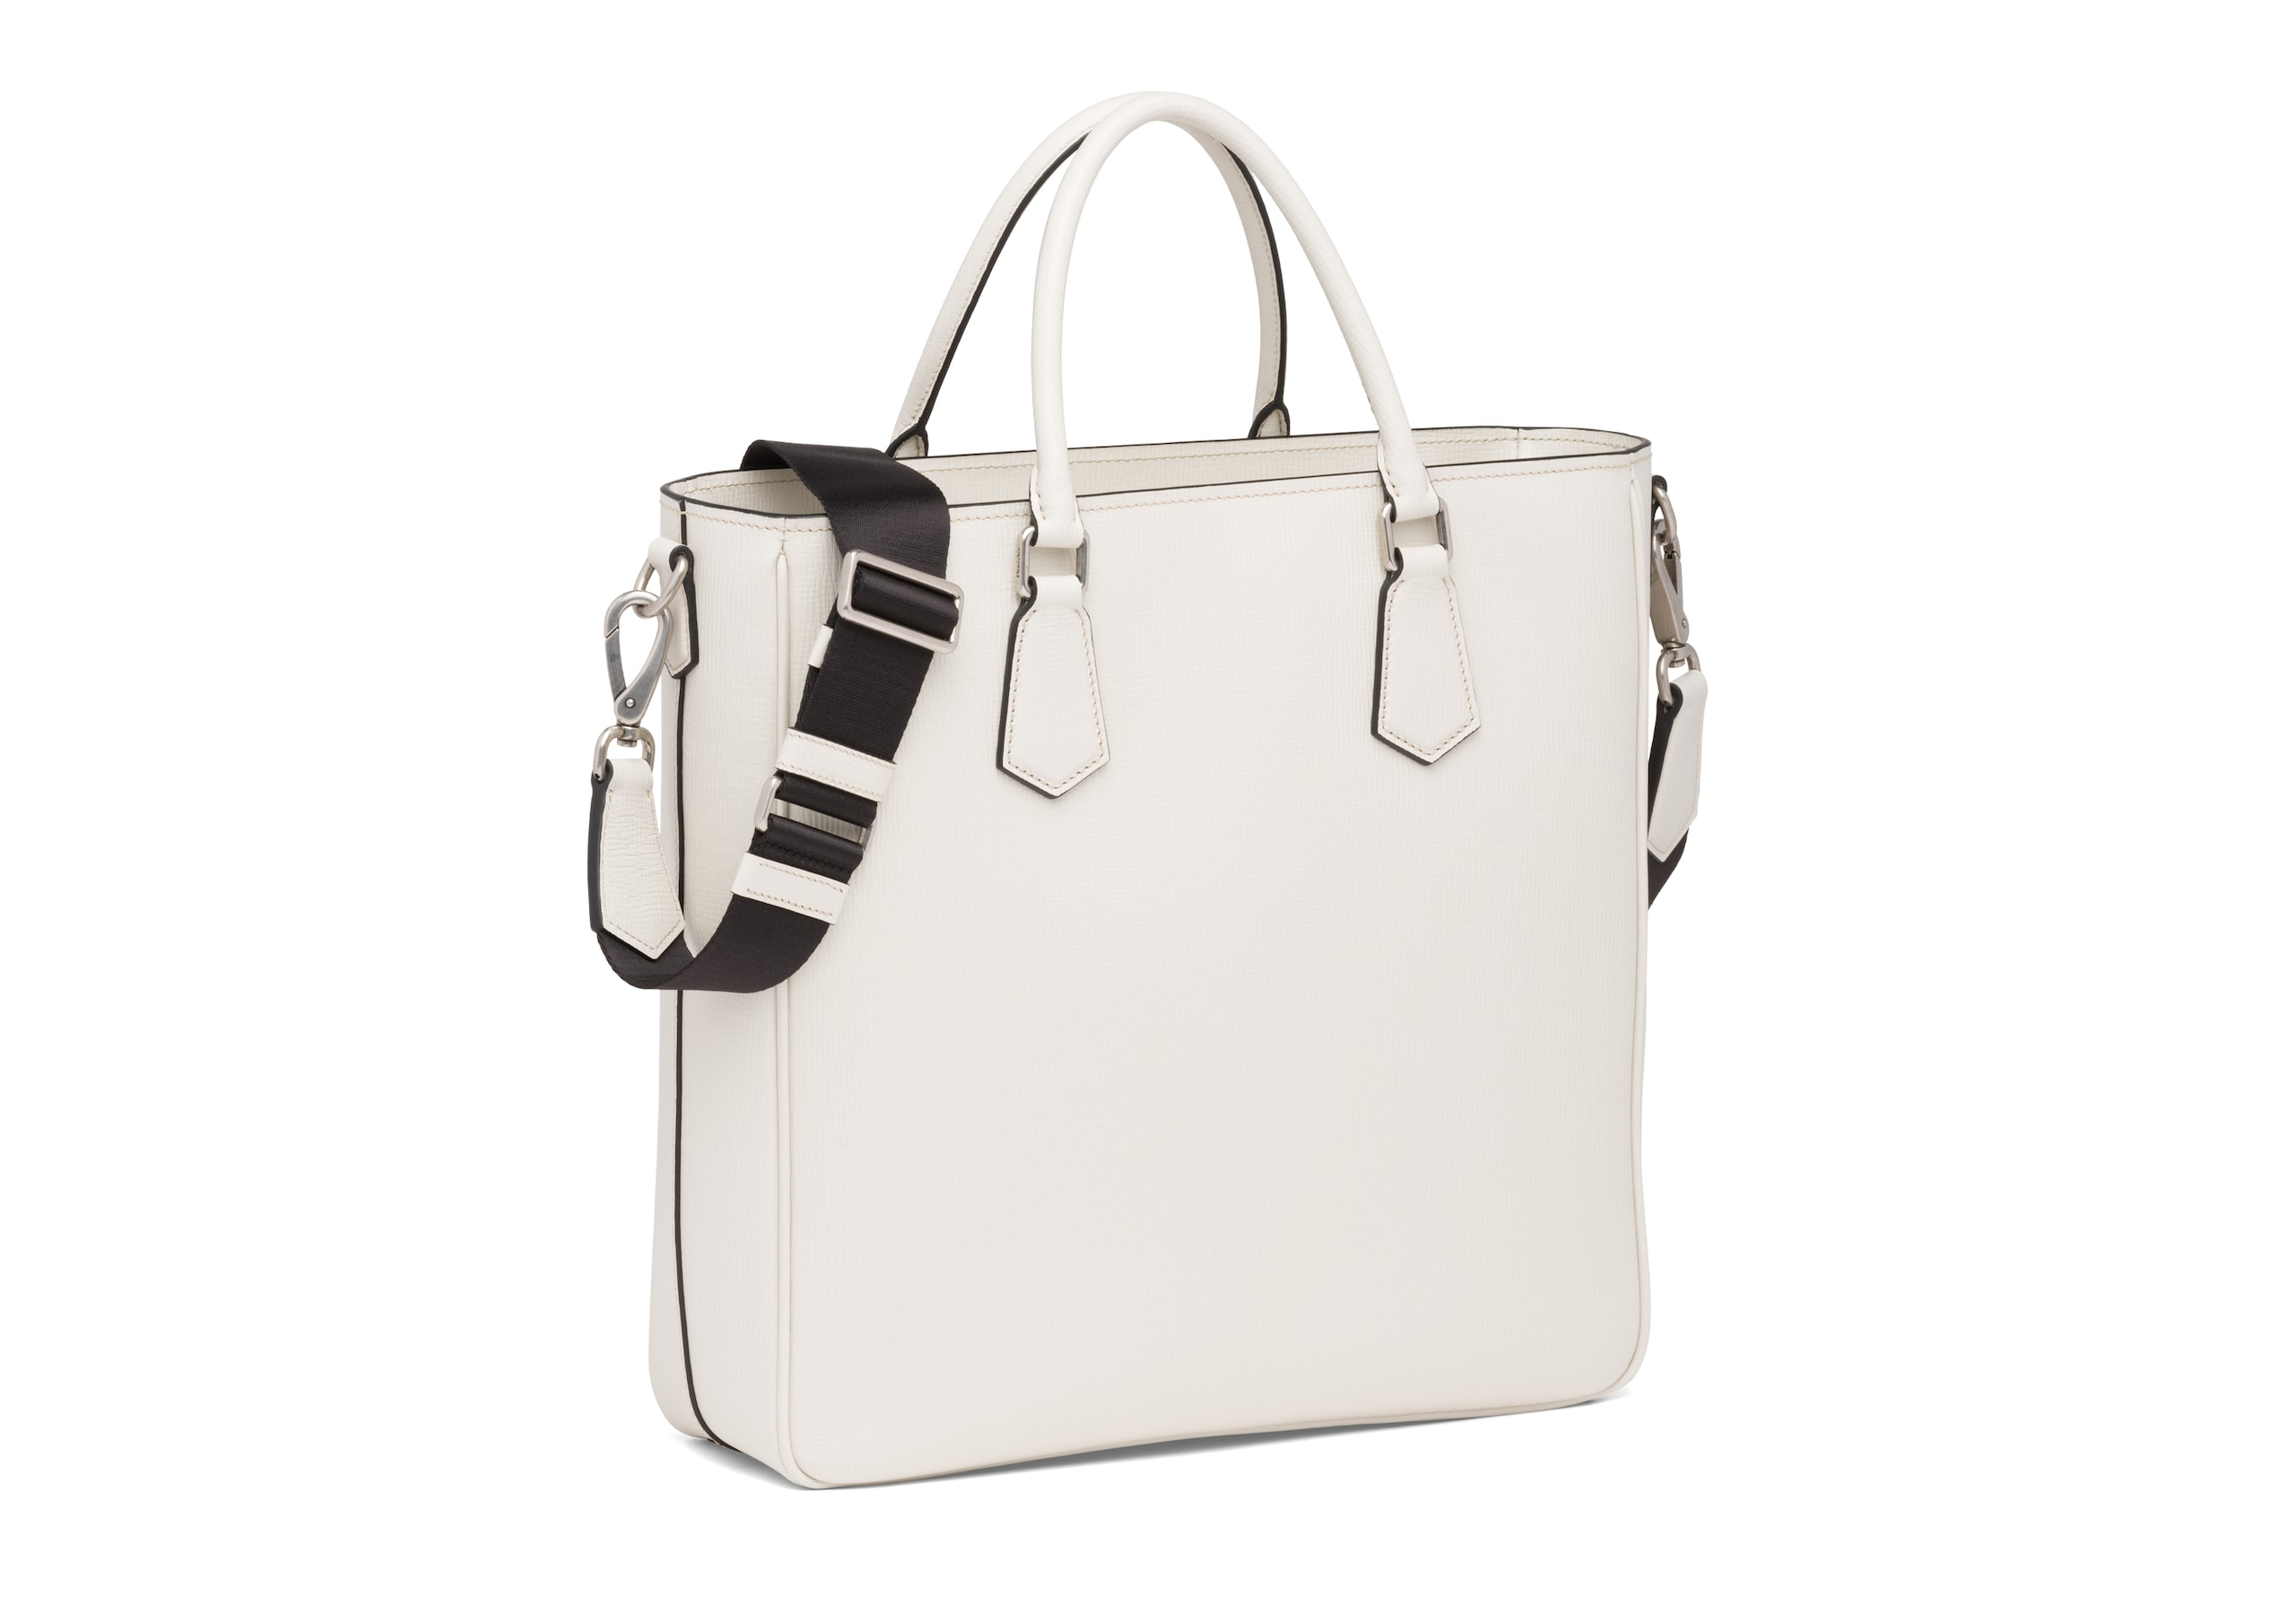 Guilford Church's St James Leather Tote Bag Neutral